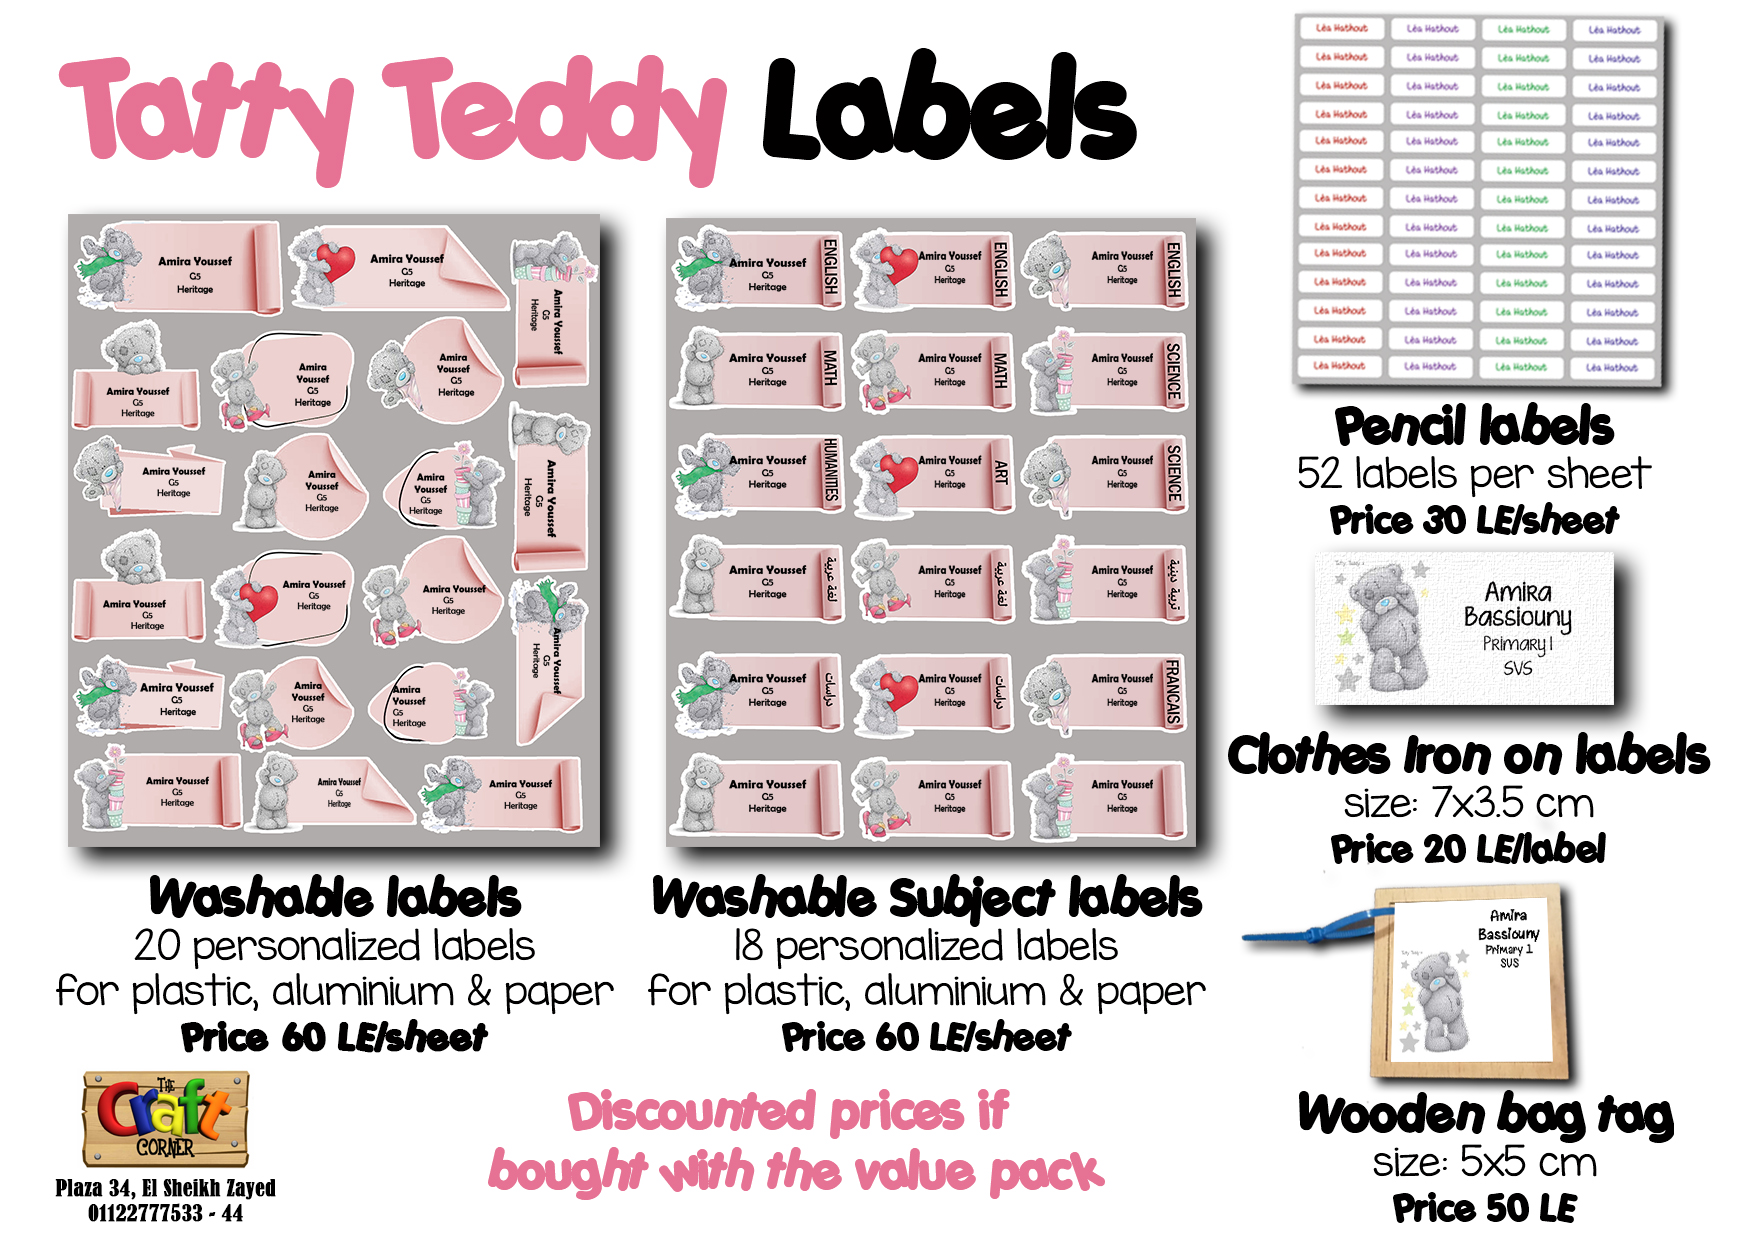 Tatty teddy Labels